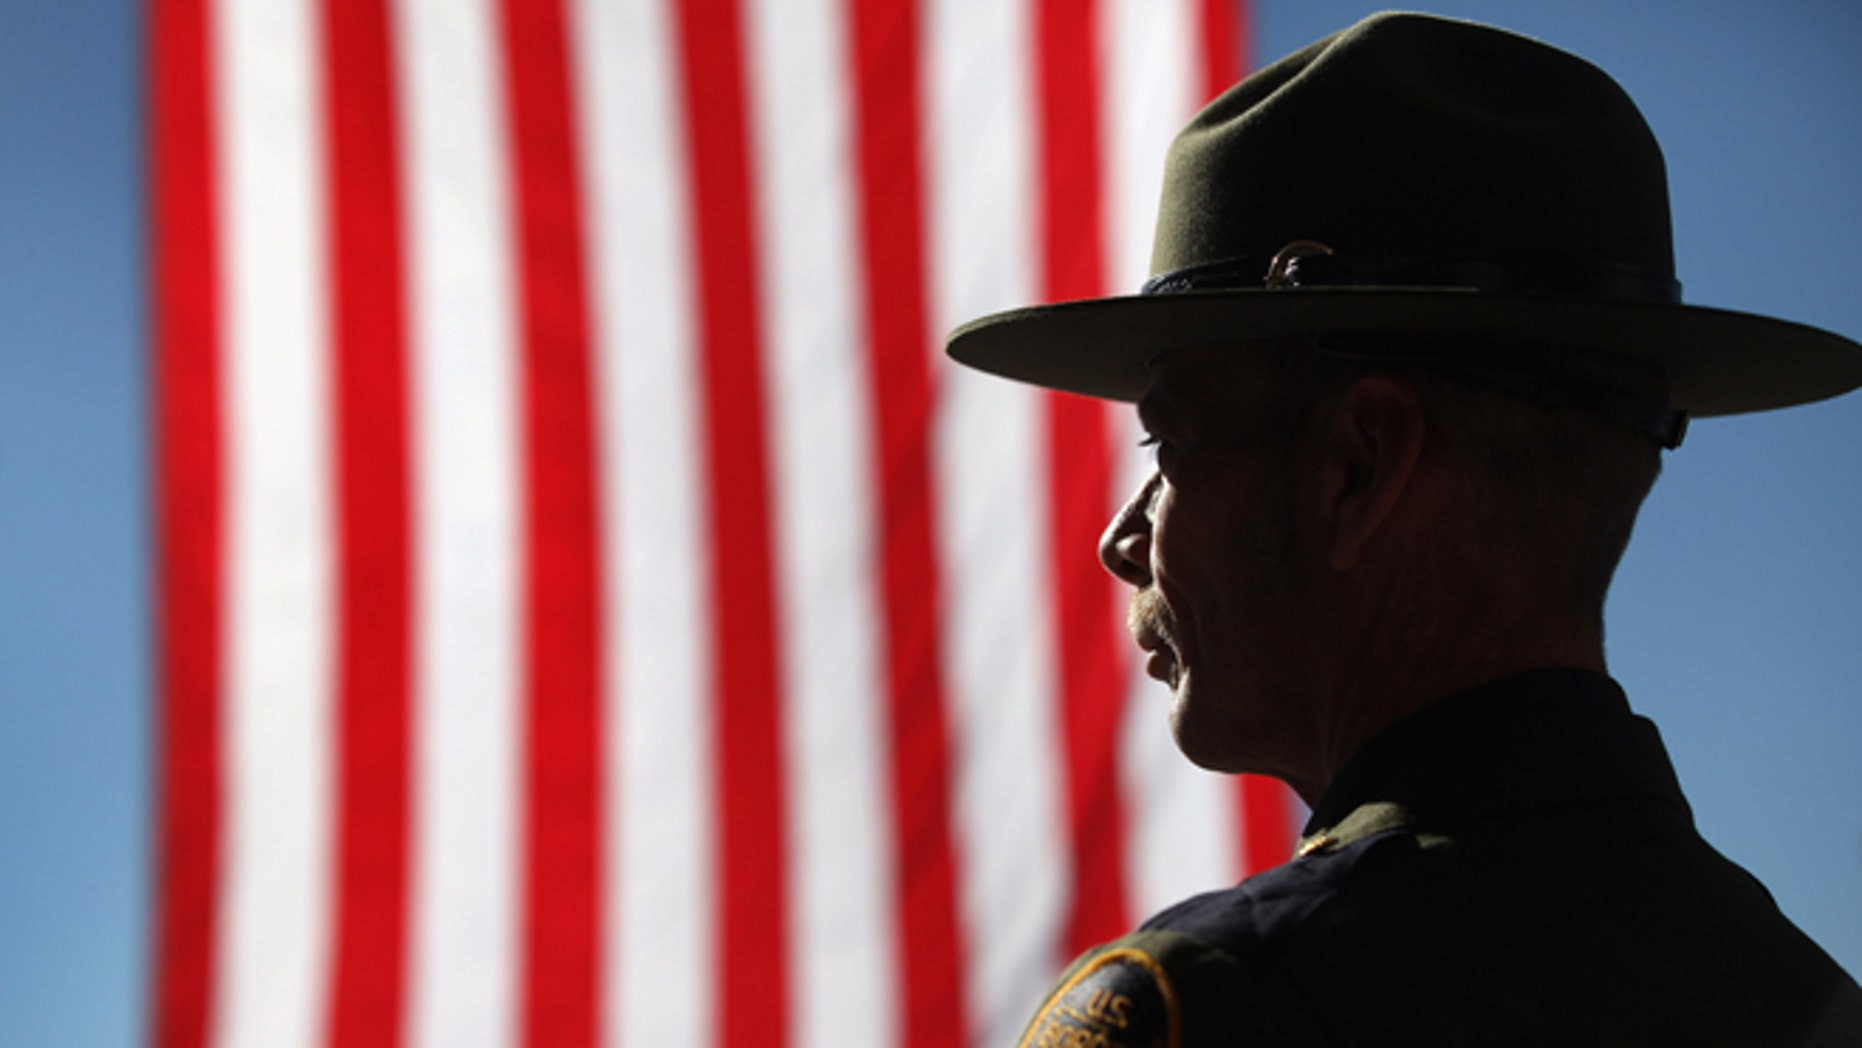 TUCSON, AZ - JANUARY 21:  U.S. Border Patrol agent Michael Wagenen attends a memorial service for slain comrade Brian Terry on January 21, 2011 in Tucson, Arizona. Agent Terry was killed during a December14 shootout with suspected bandits near the U.S.-Mexico Border. Thousands of Border Patrol agents and fellow law enforcement officers from across Arizona turned out for the memorial service held at Kino baseball stadium in Tucson. With U.S. agents tracking drug smugglers and illegal immigrants all along the border, the region has become one of the most militarized areas of the United States.  (Photo by John Moore/Getty Images)